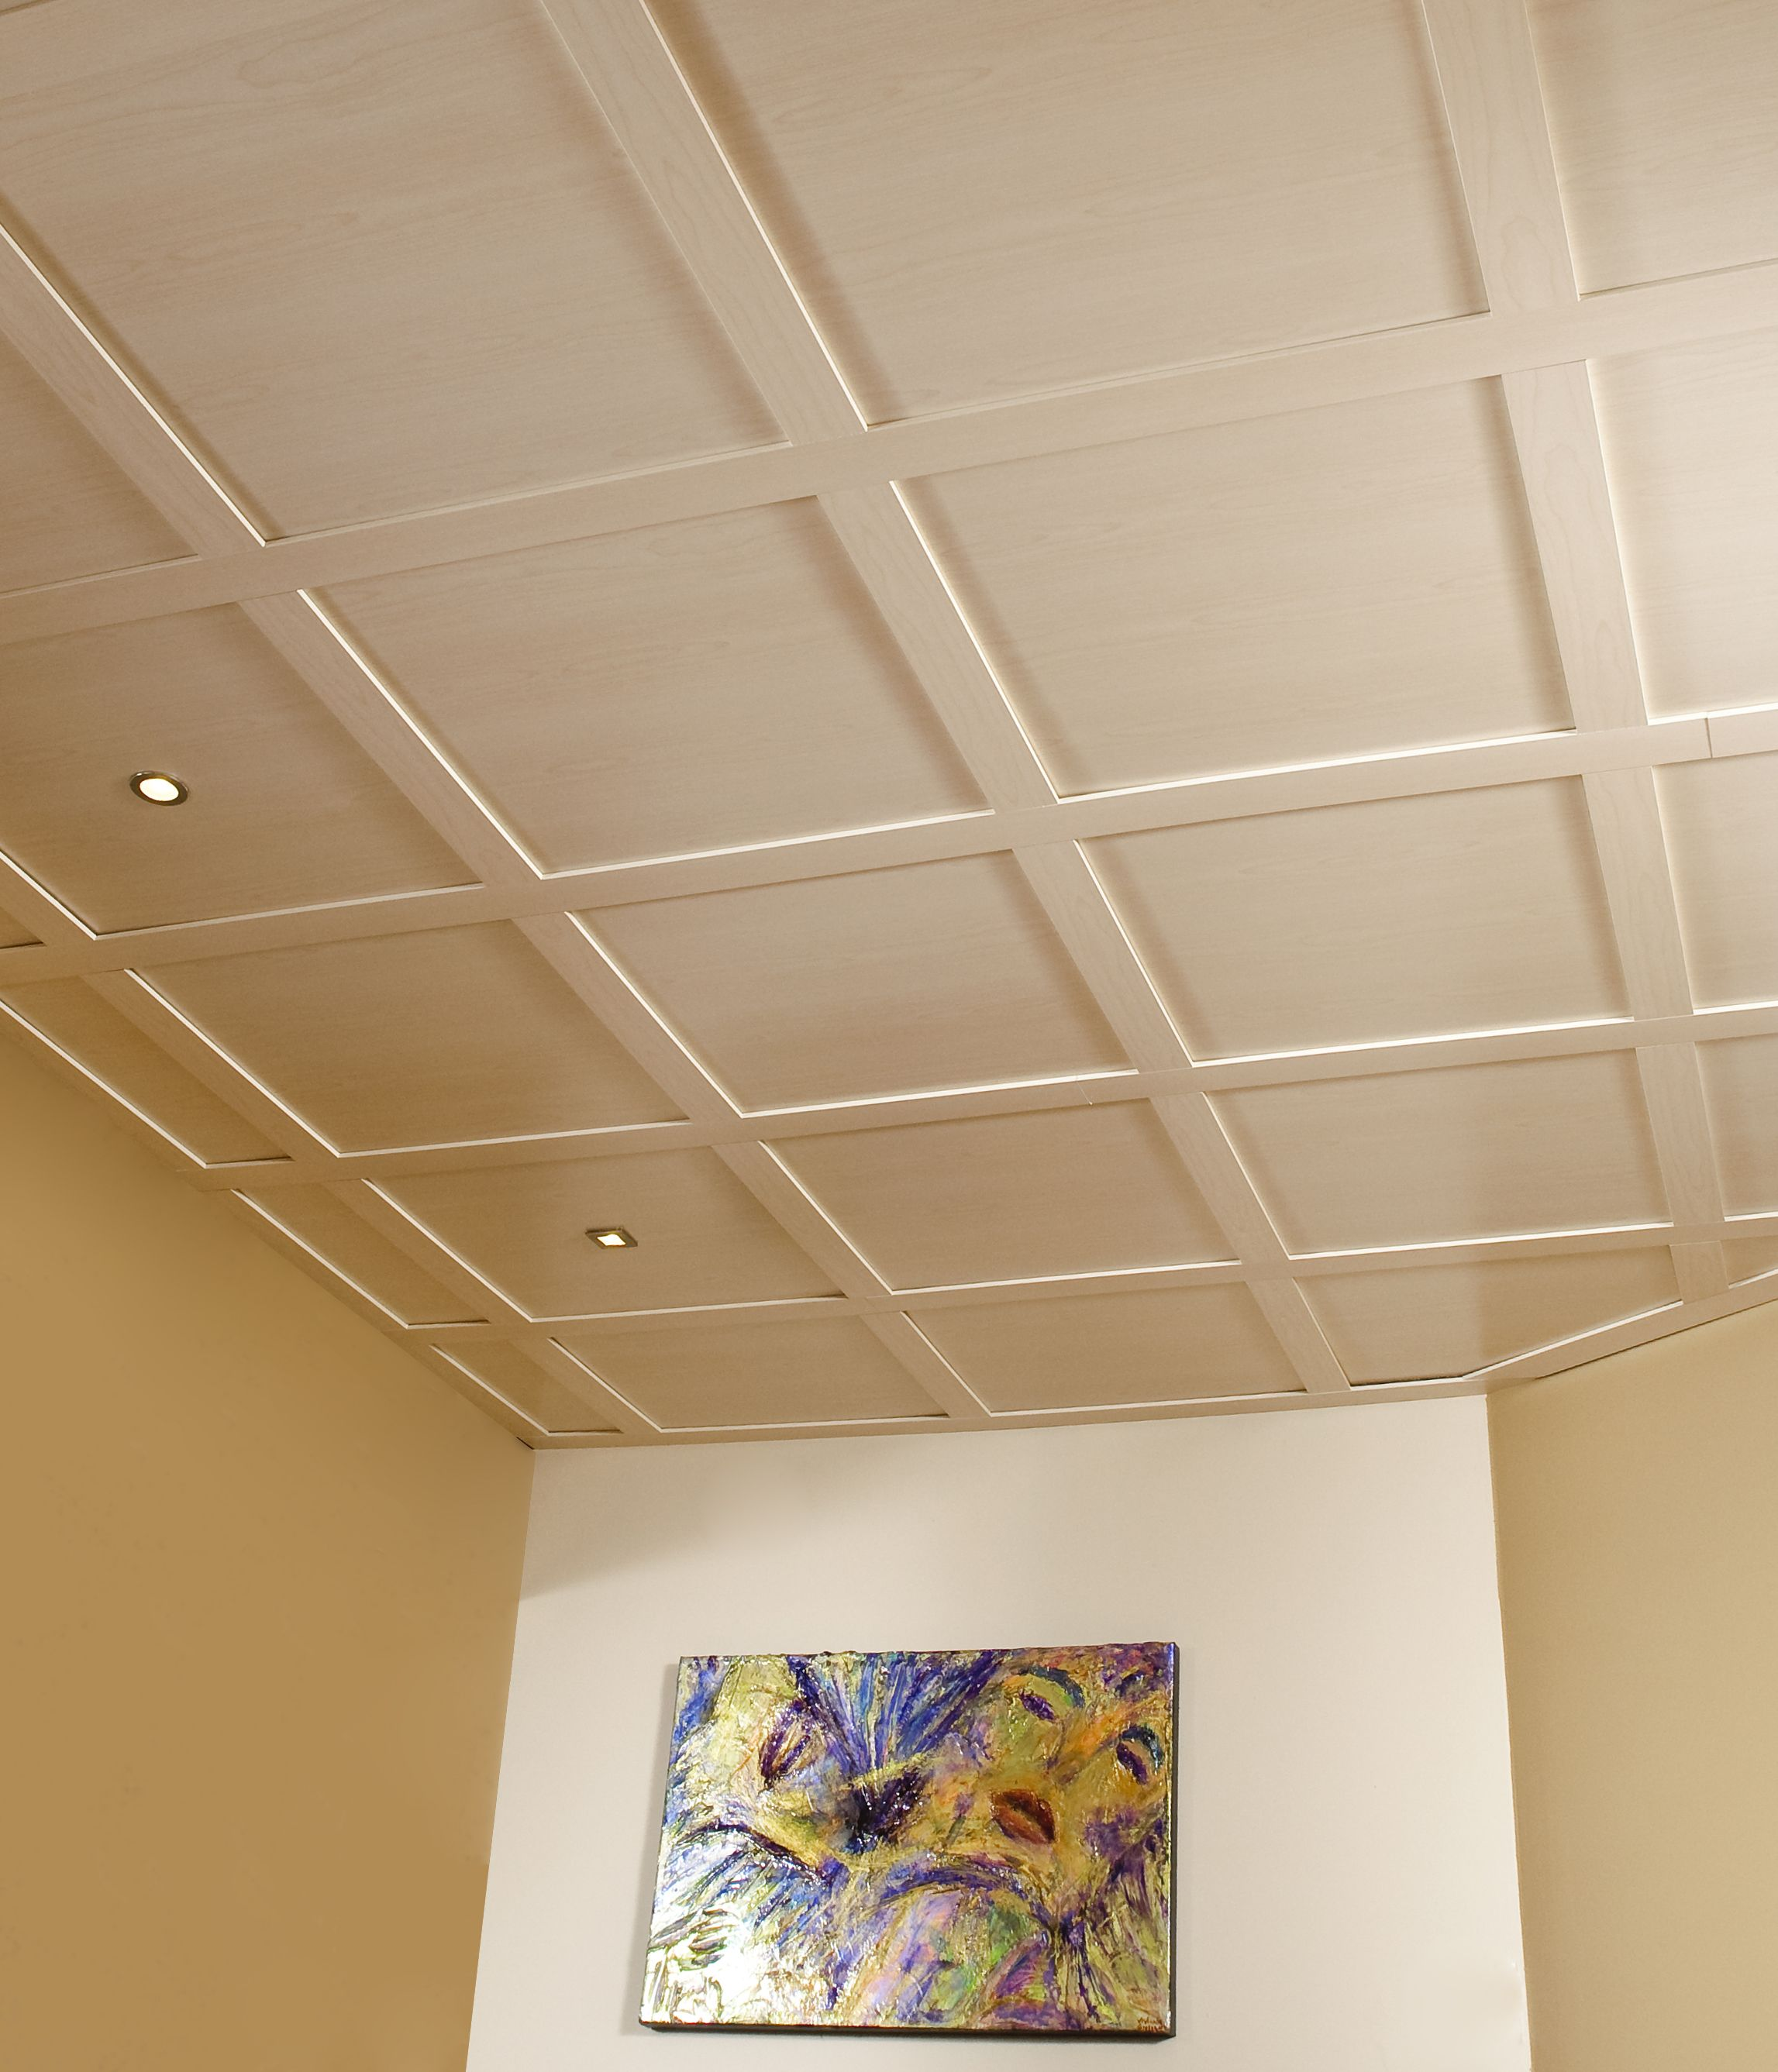 Plafond suspendu embassy rable plafond embassy for Plafond a caisson suspendu